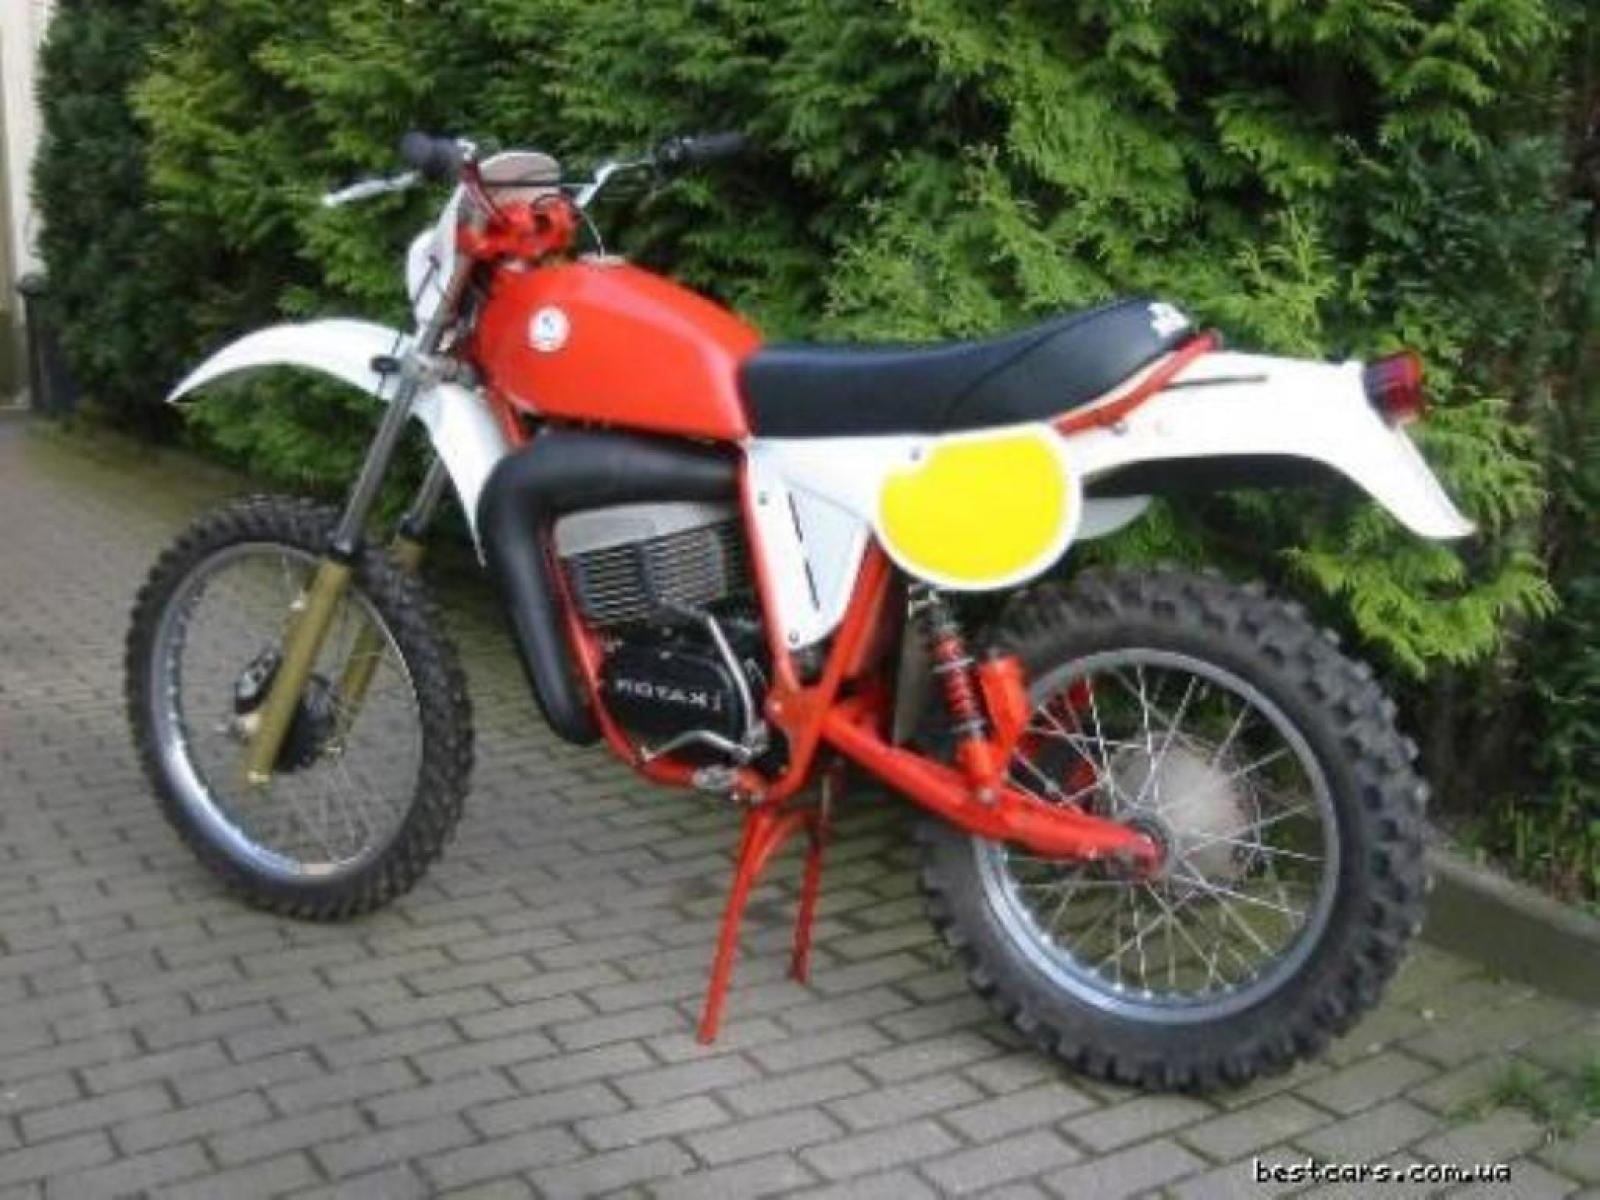 Puch GS 250 F 5 1985 images #121624